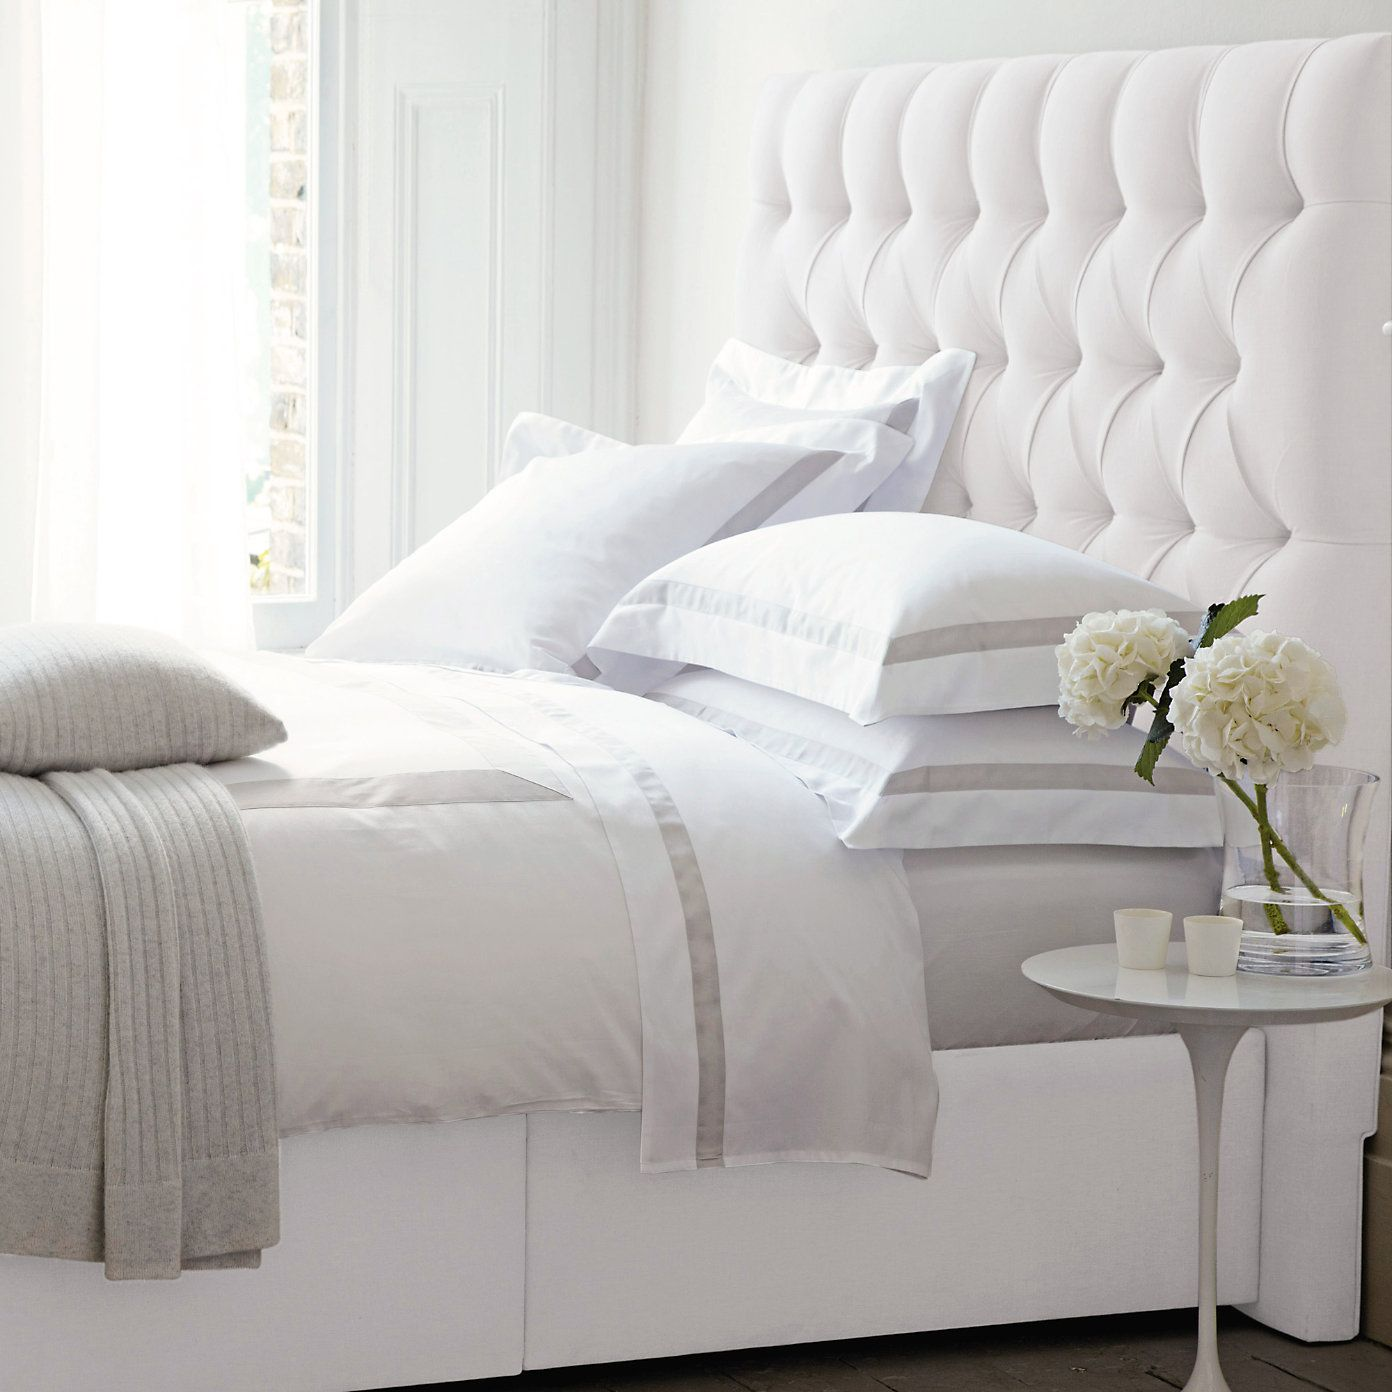 Richmond Headboard Beds The White Company For Peter Pan Bedroom Bedroom Interior Home Decor White Headboard